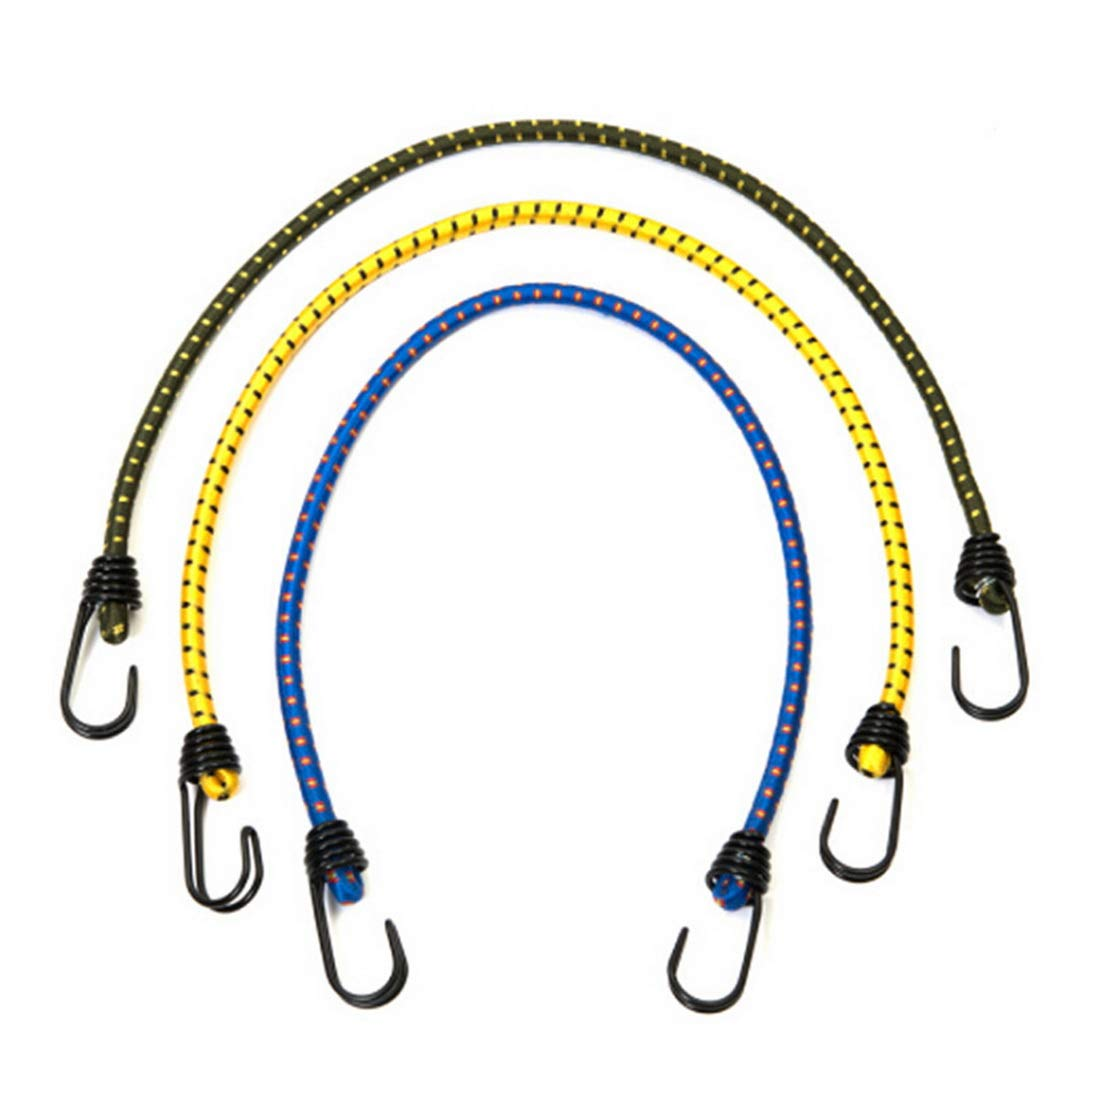 Bungee Cords With Hooks Assortment 3 Pcs Length 23.62 Inch Dia 0.31 Inch Random Color For Cargo Camping Rvs Trunks Luggage Racks - Elastic Shock Cord Tarp Tie Downs